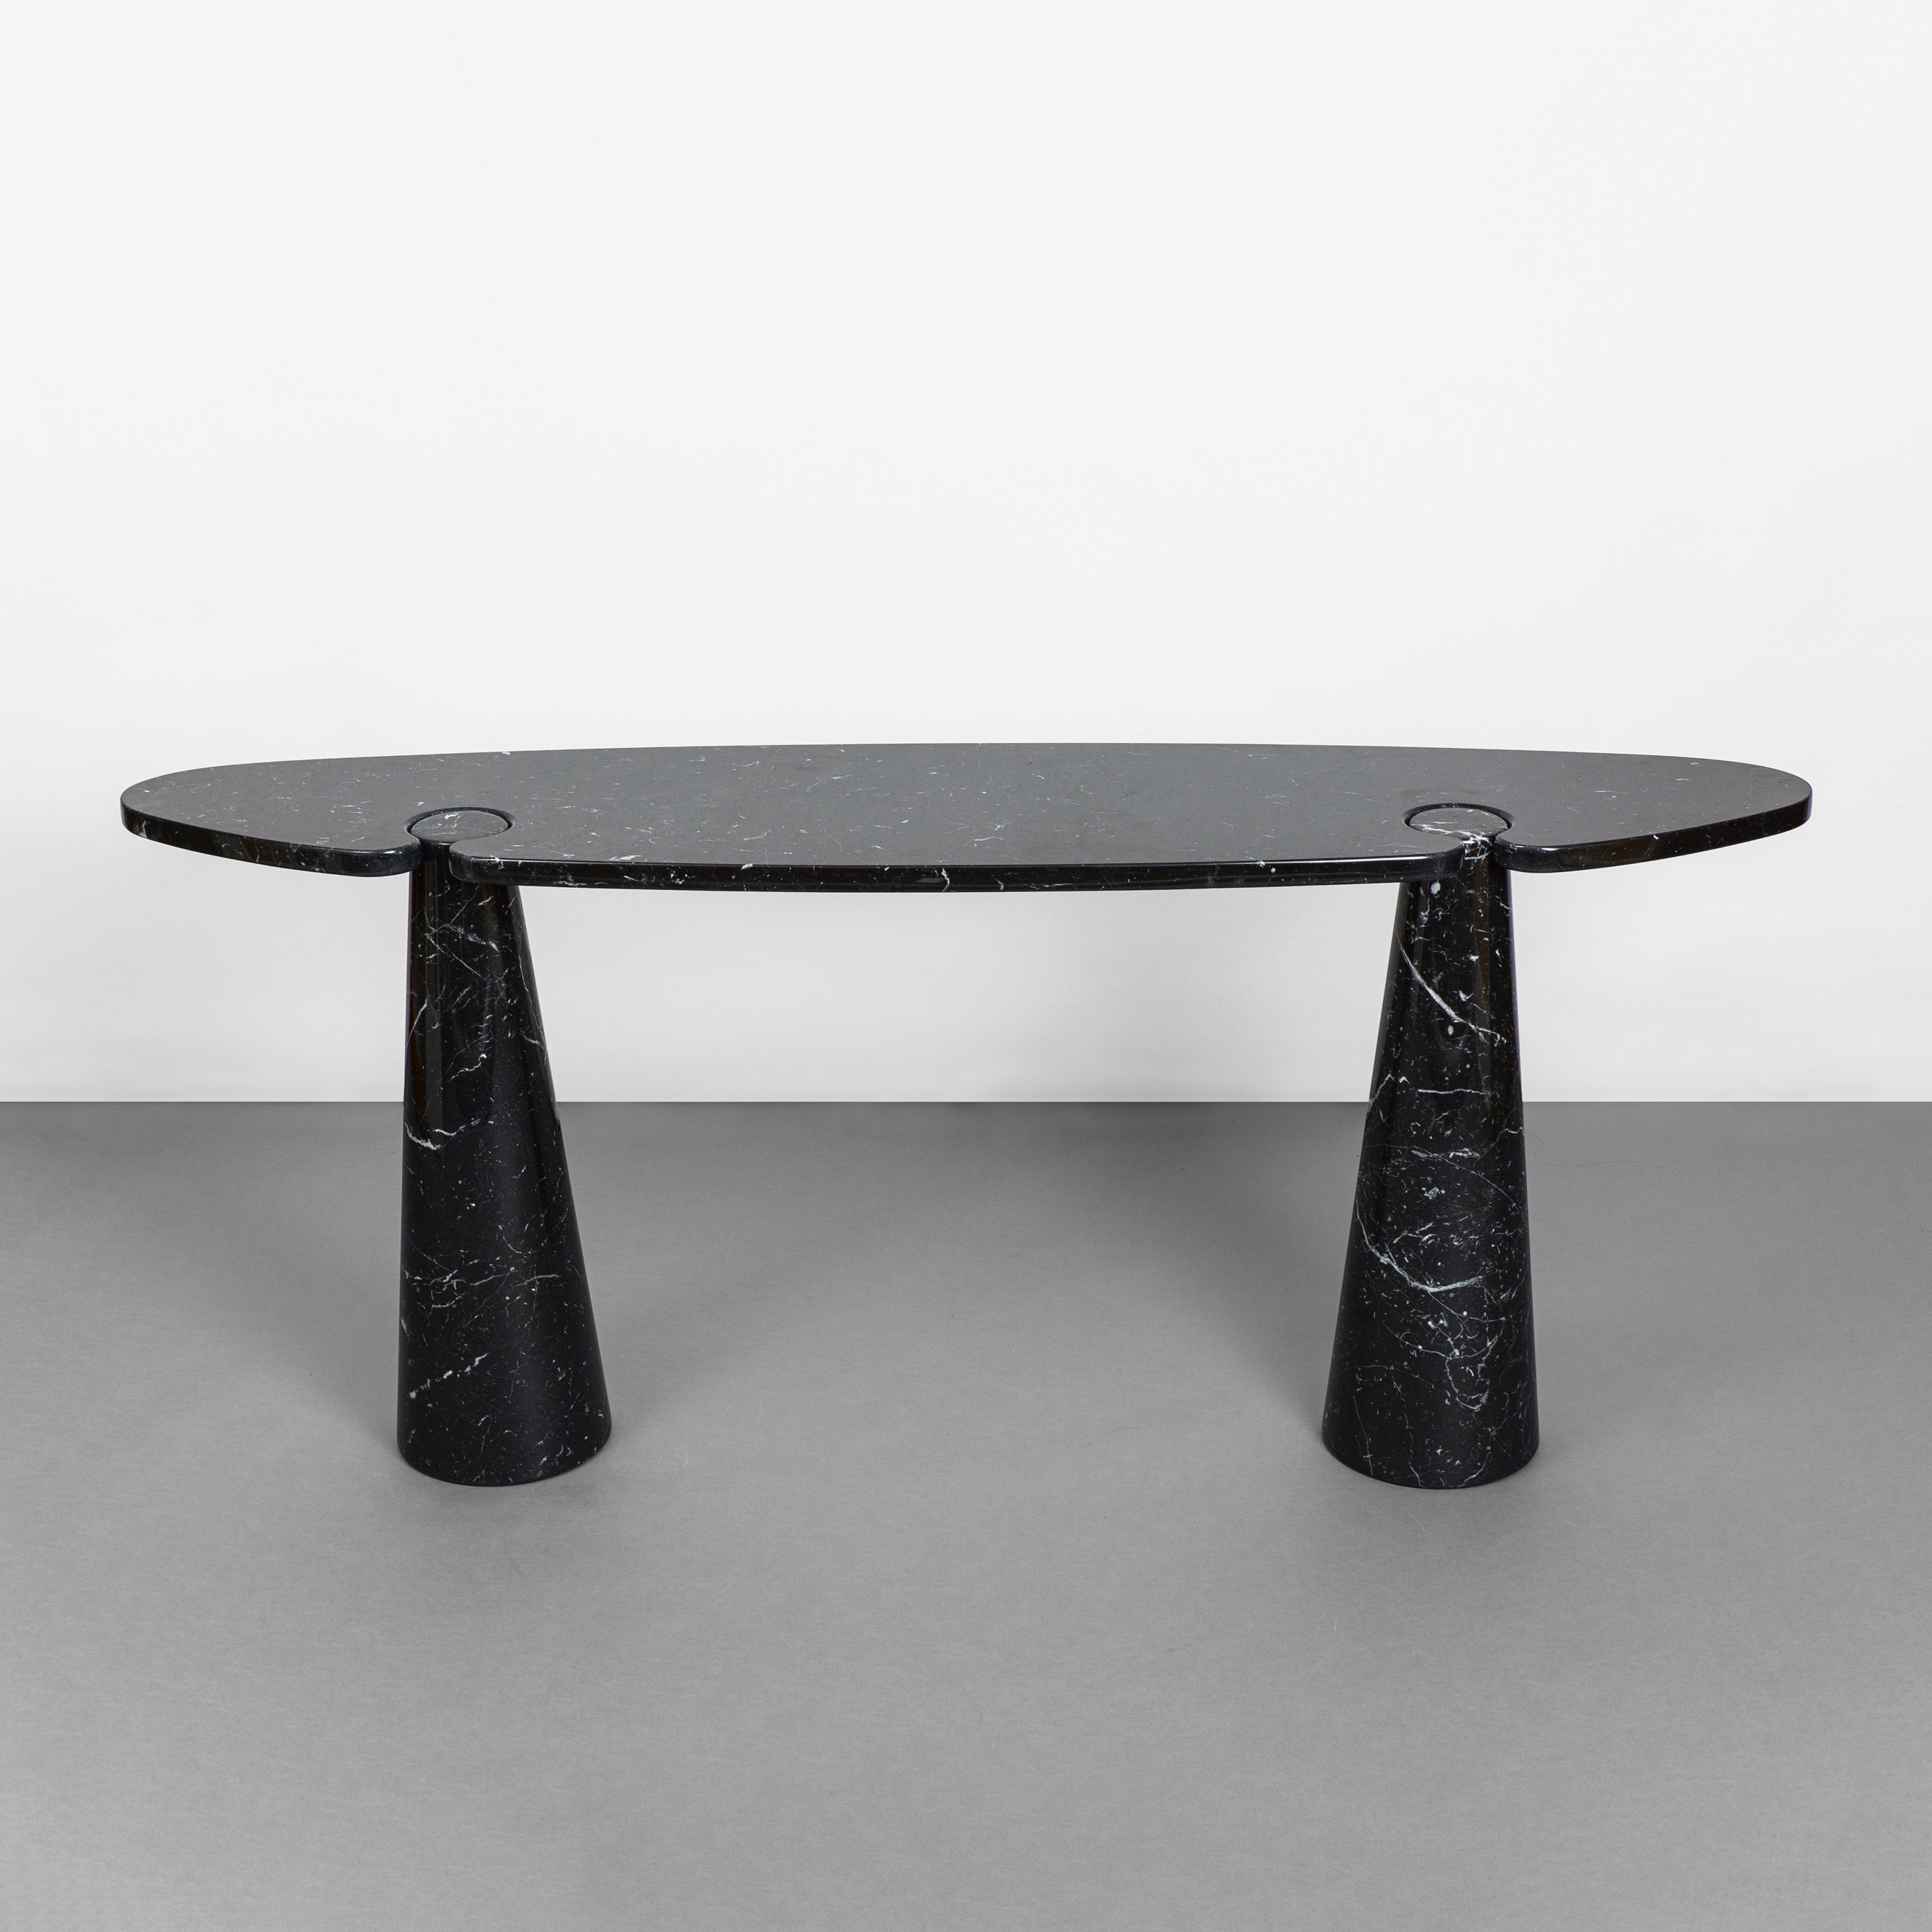 Console from 'Eros' Series by Angelo Mangiarotti for Skipper | soyun k.